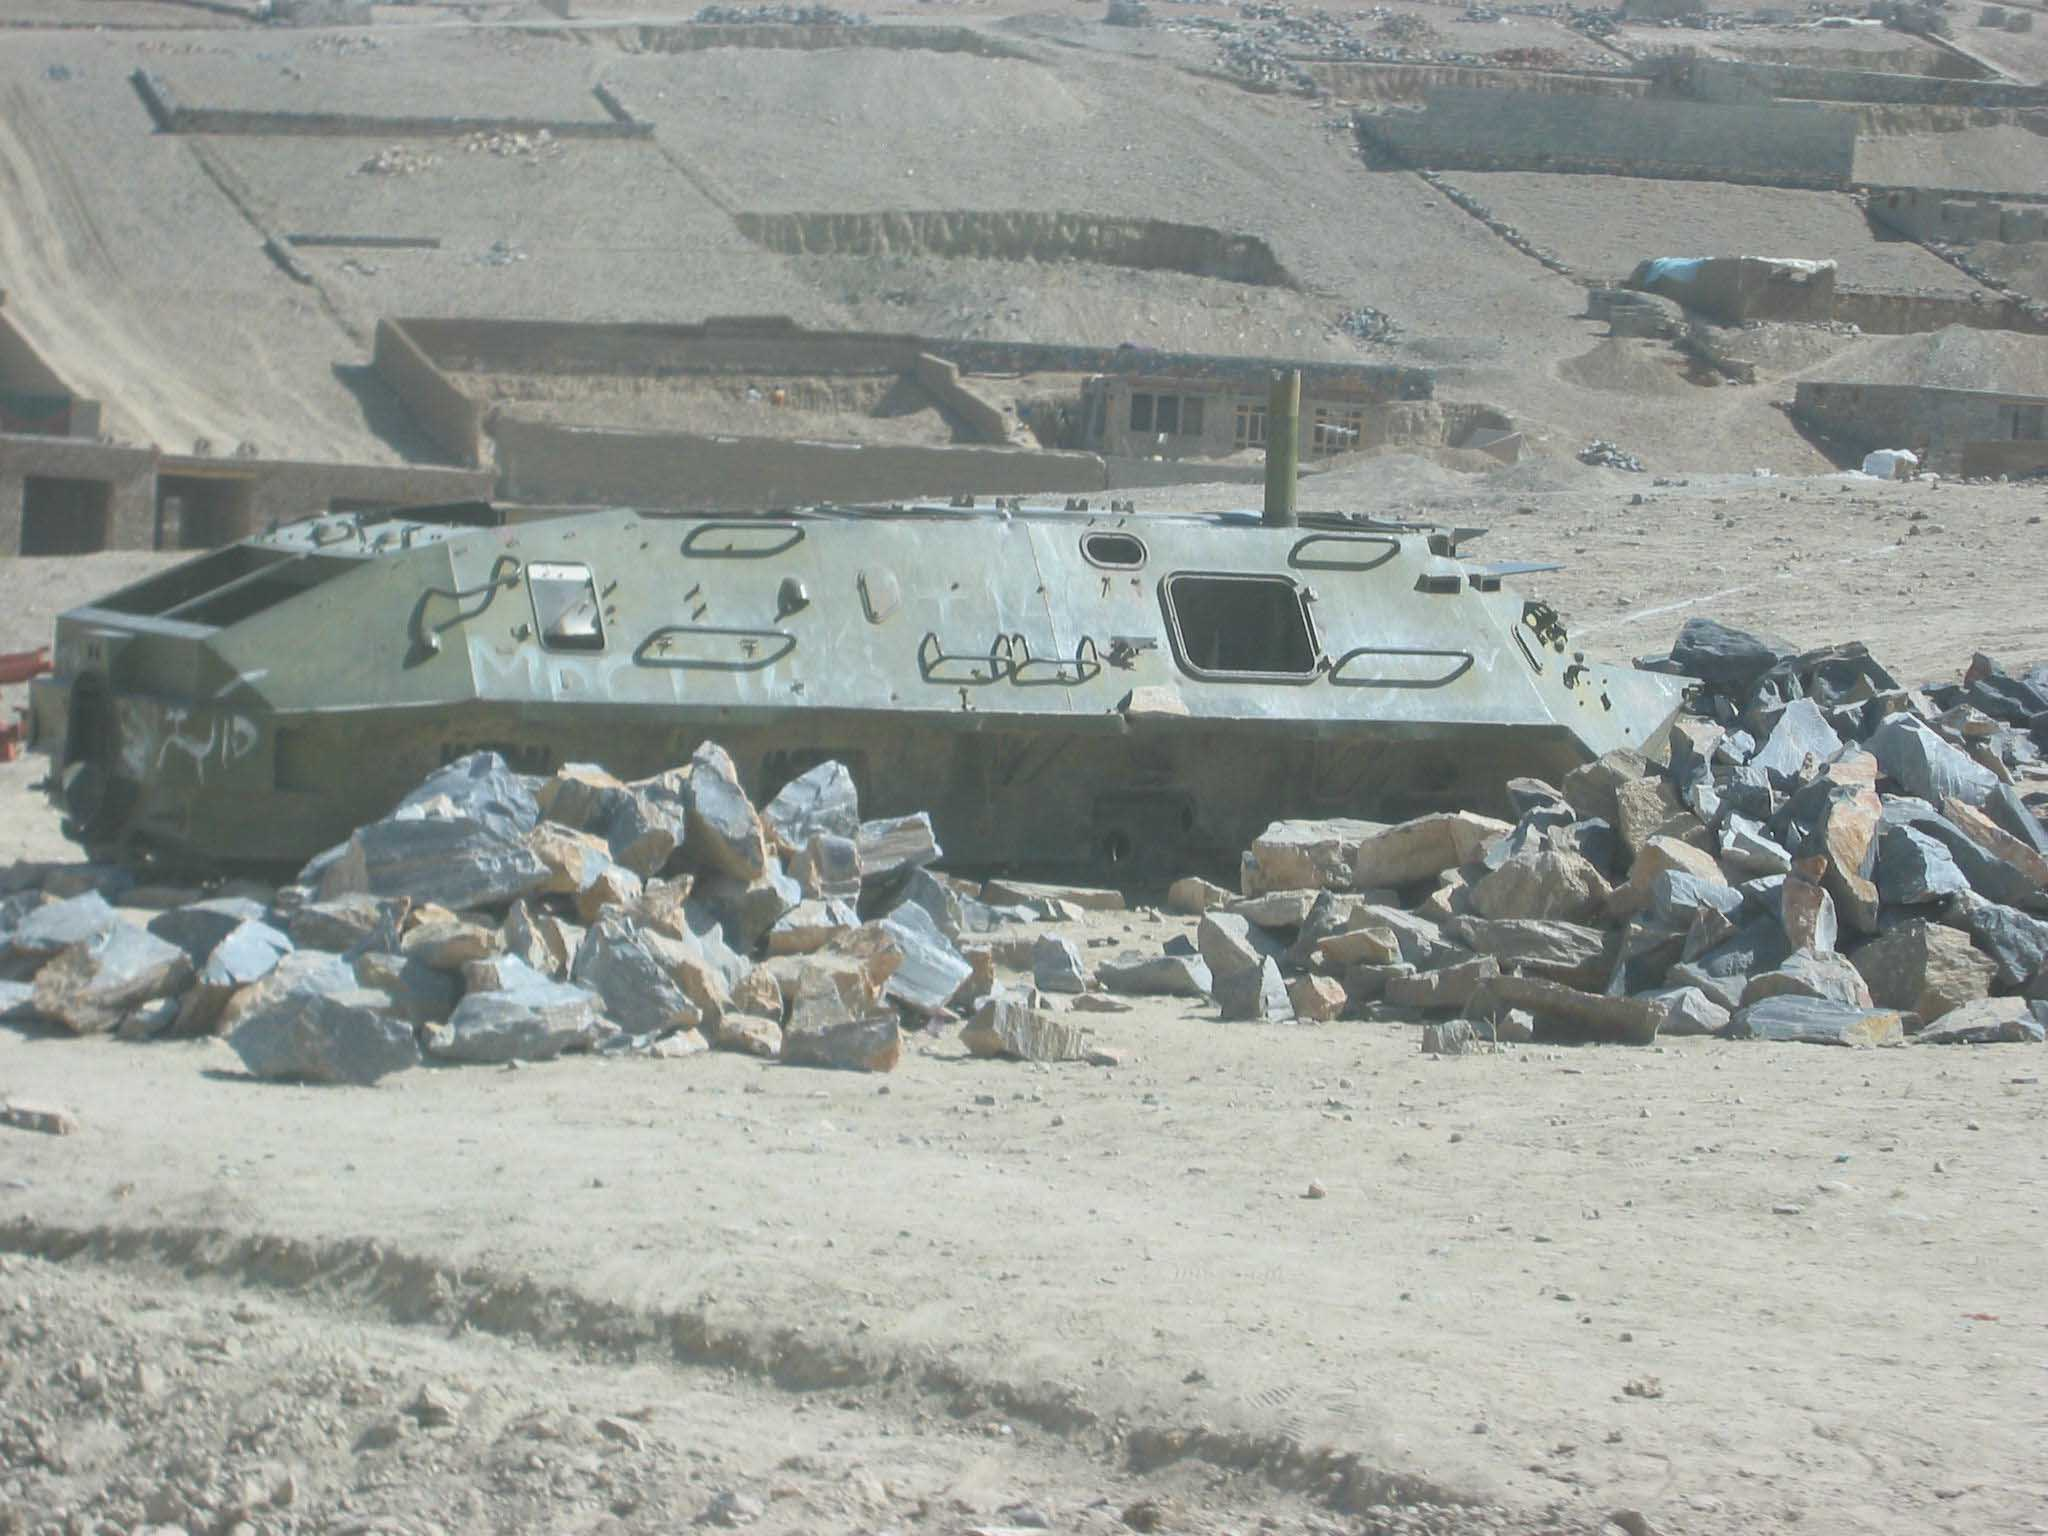 The hull of a Soviet BTR armoured personnel carrier is all that's left after locals in a village near Kabul strip it down for scrap